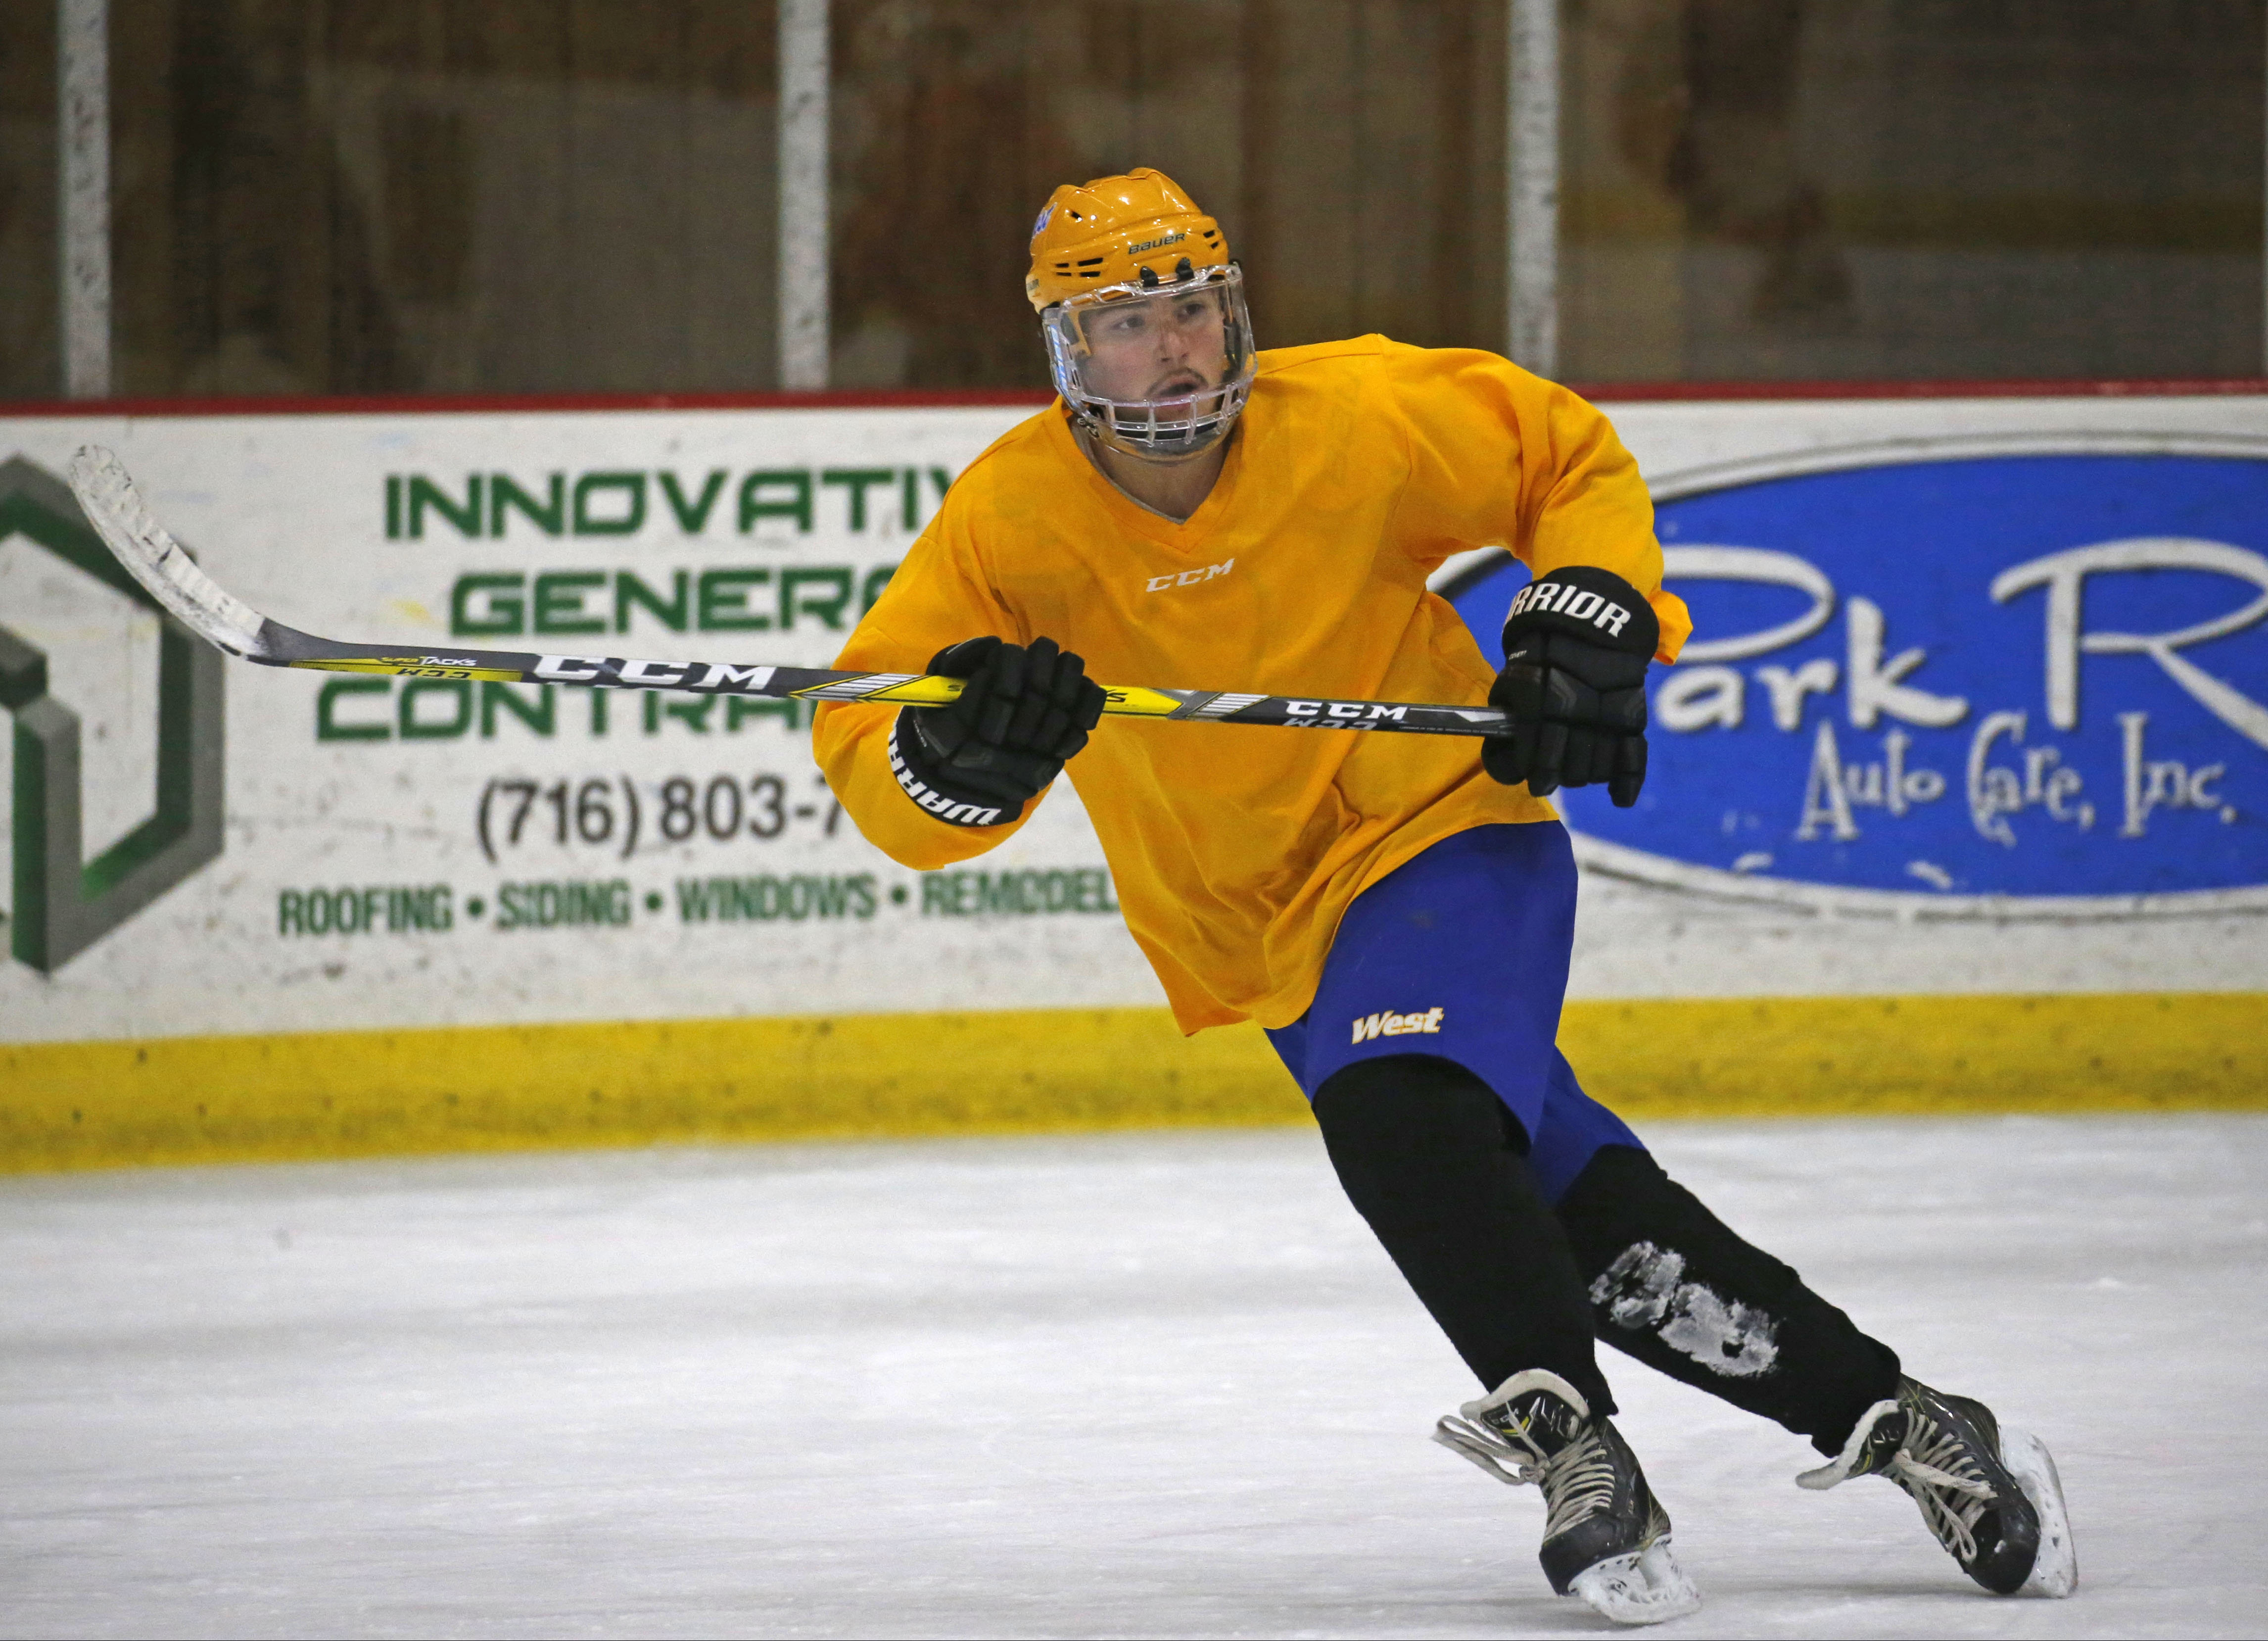 West Seneca Wests Mike Velasquez Back To Making Memories On Ice